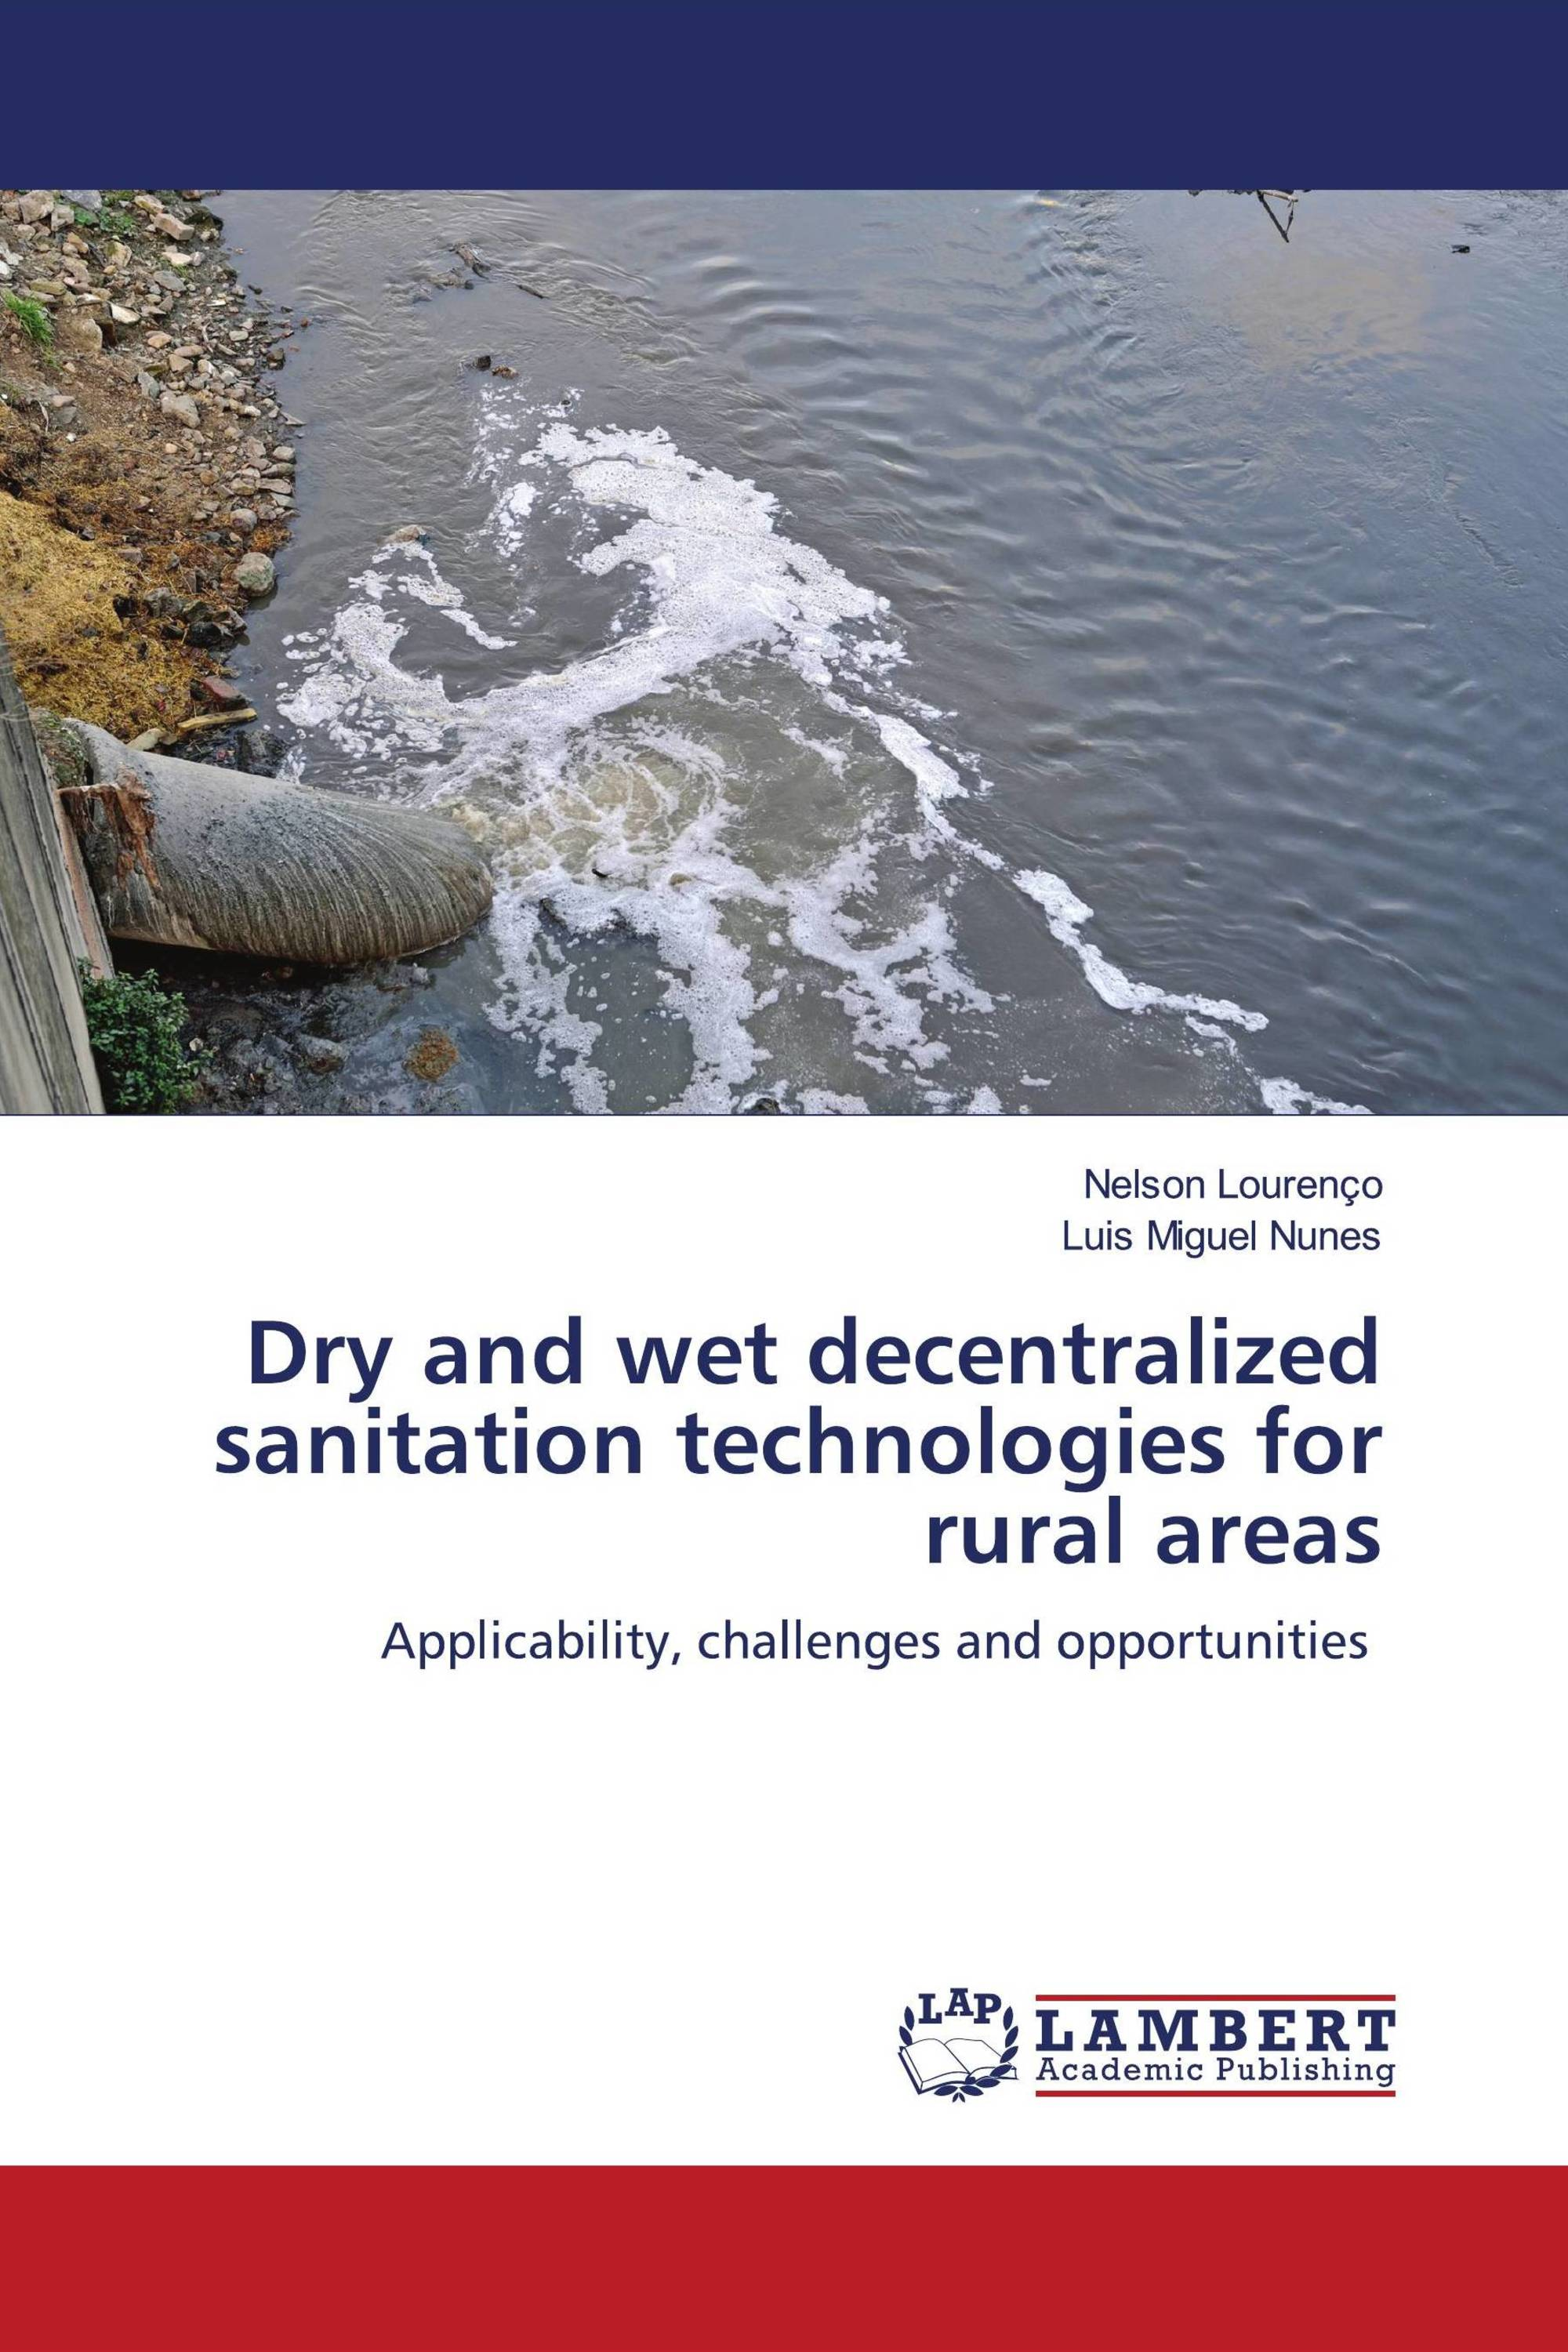 Dry and wet decentralized sanitation technologies for rural areas